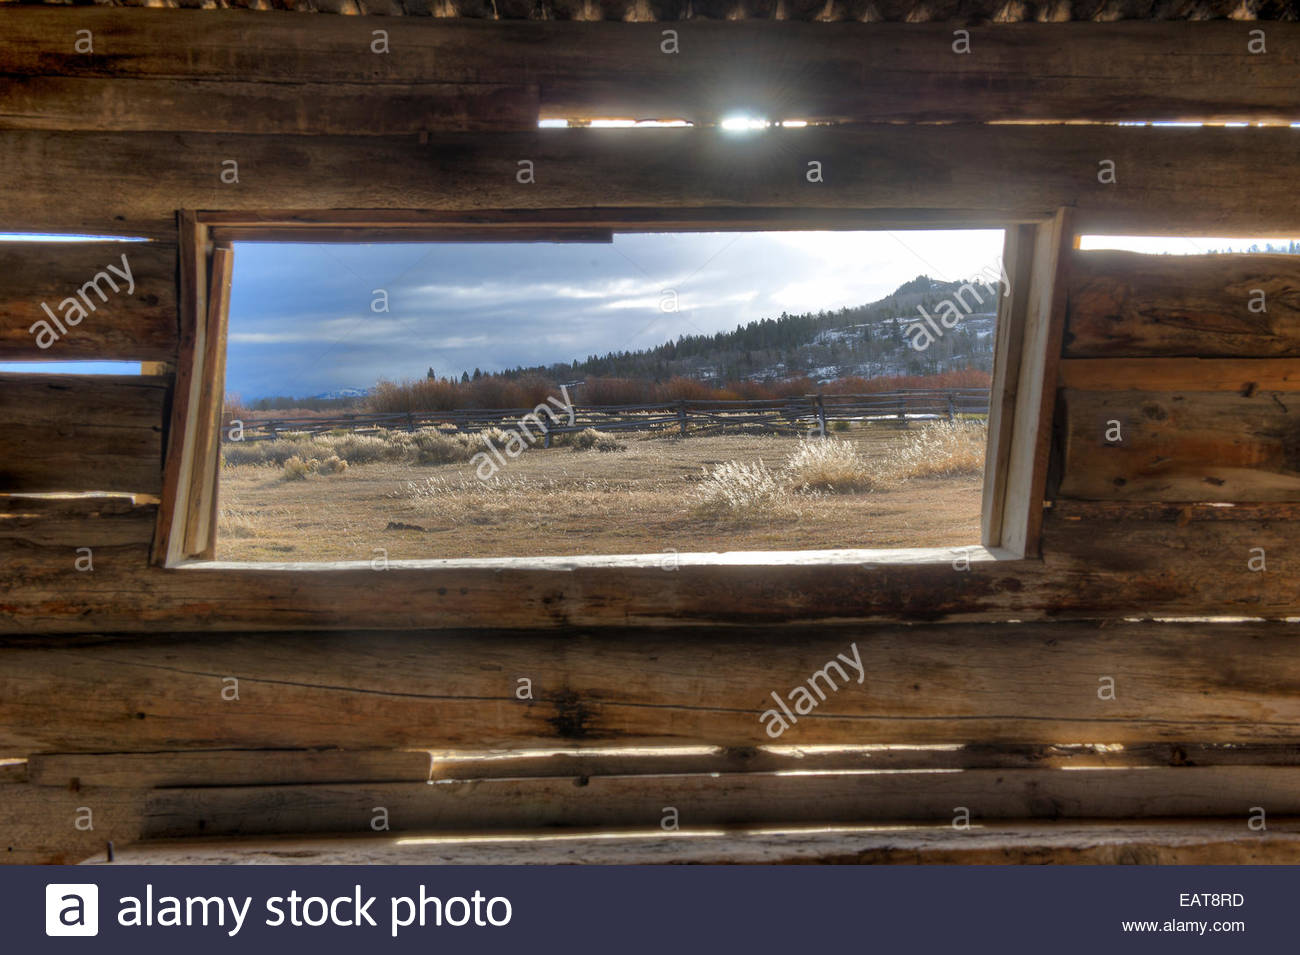 The window of Cunningham cabin homestead and historic site. - Stock Image